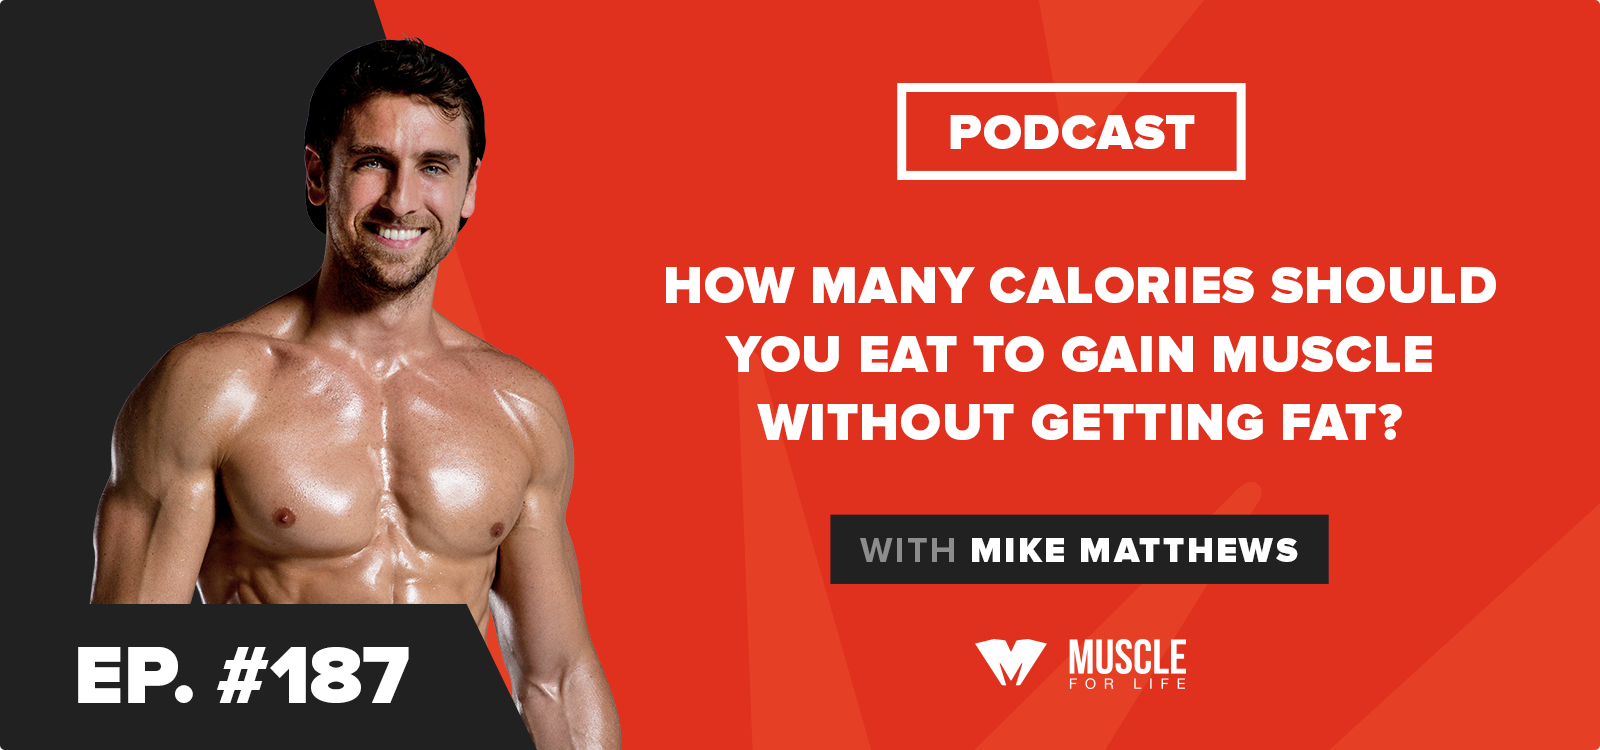 How Many Calories Should You Eat to Gain Muscle Without Getting Fat?